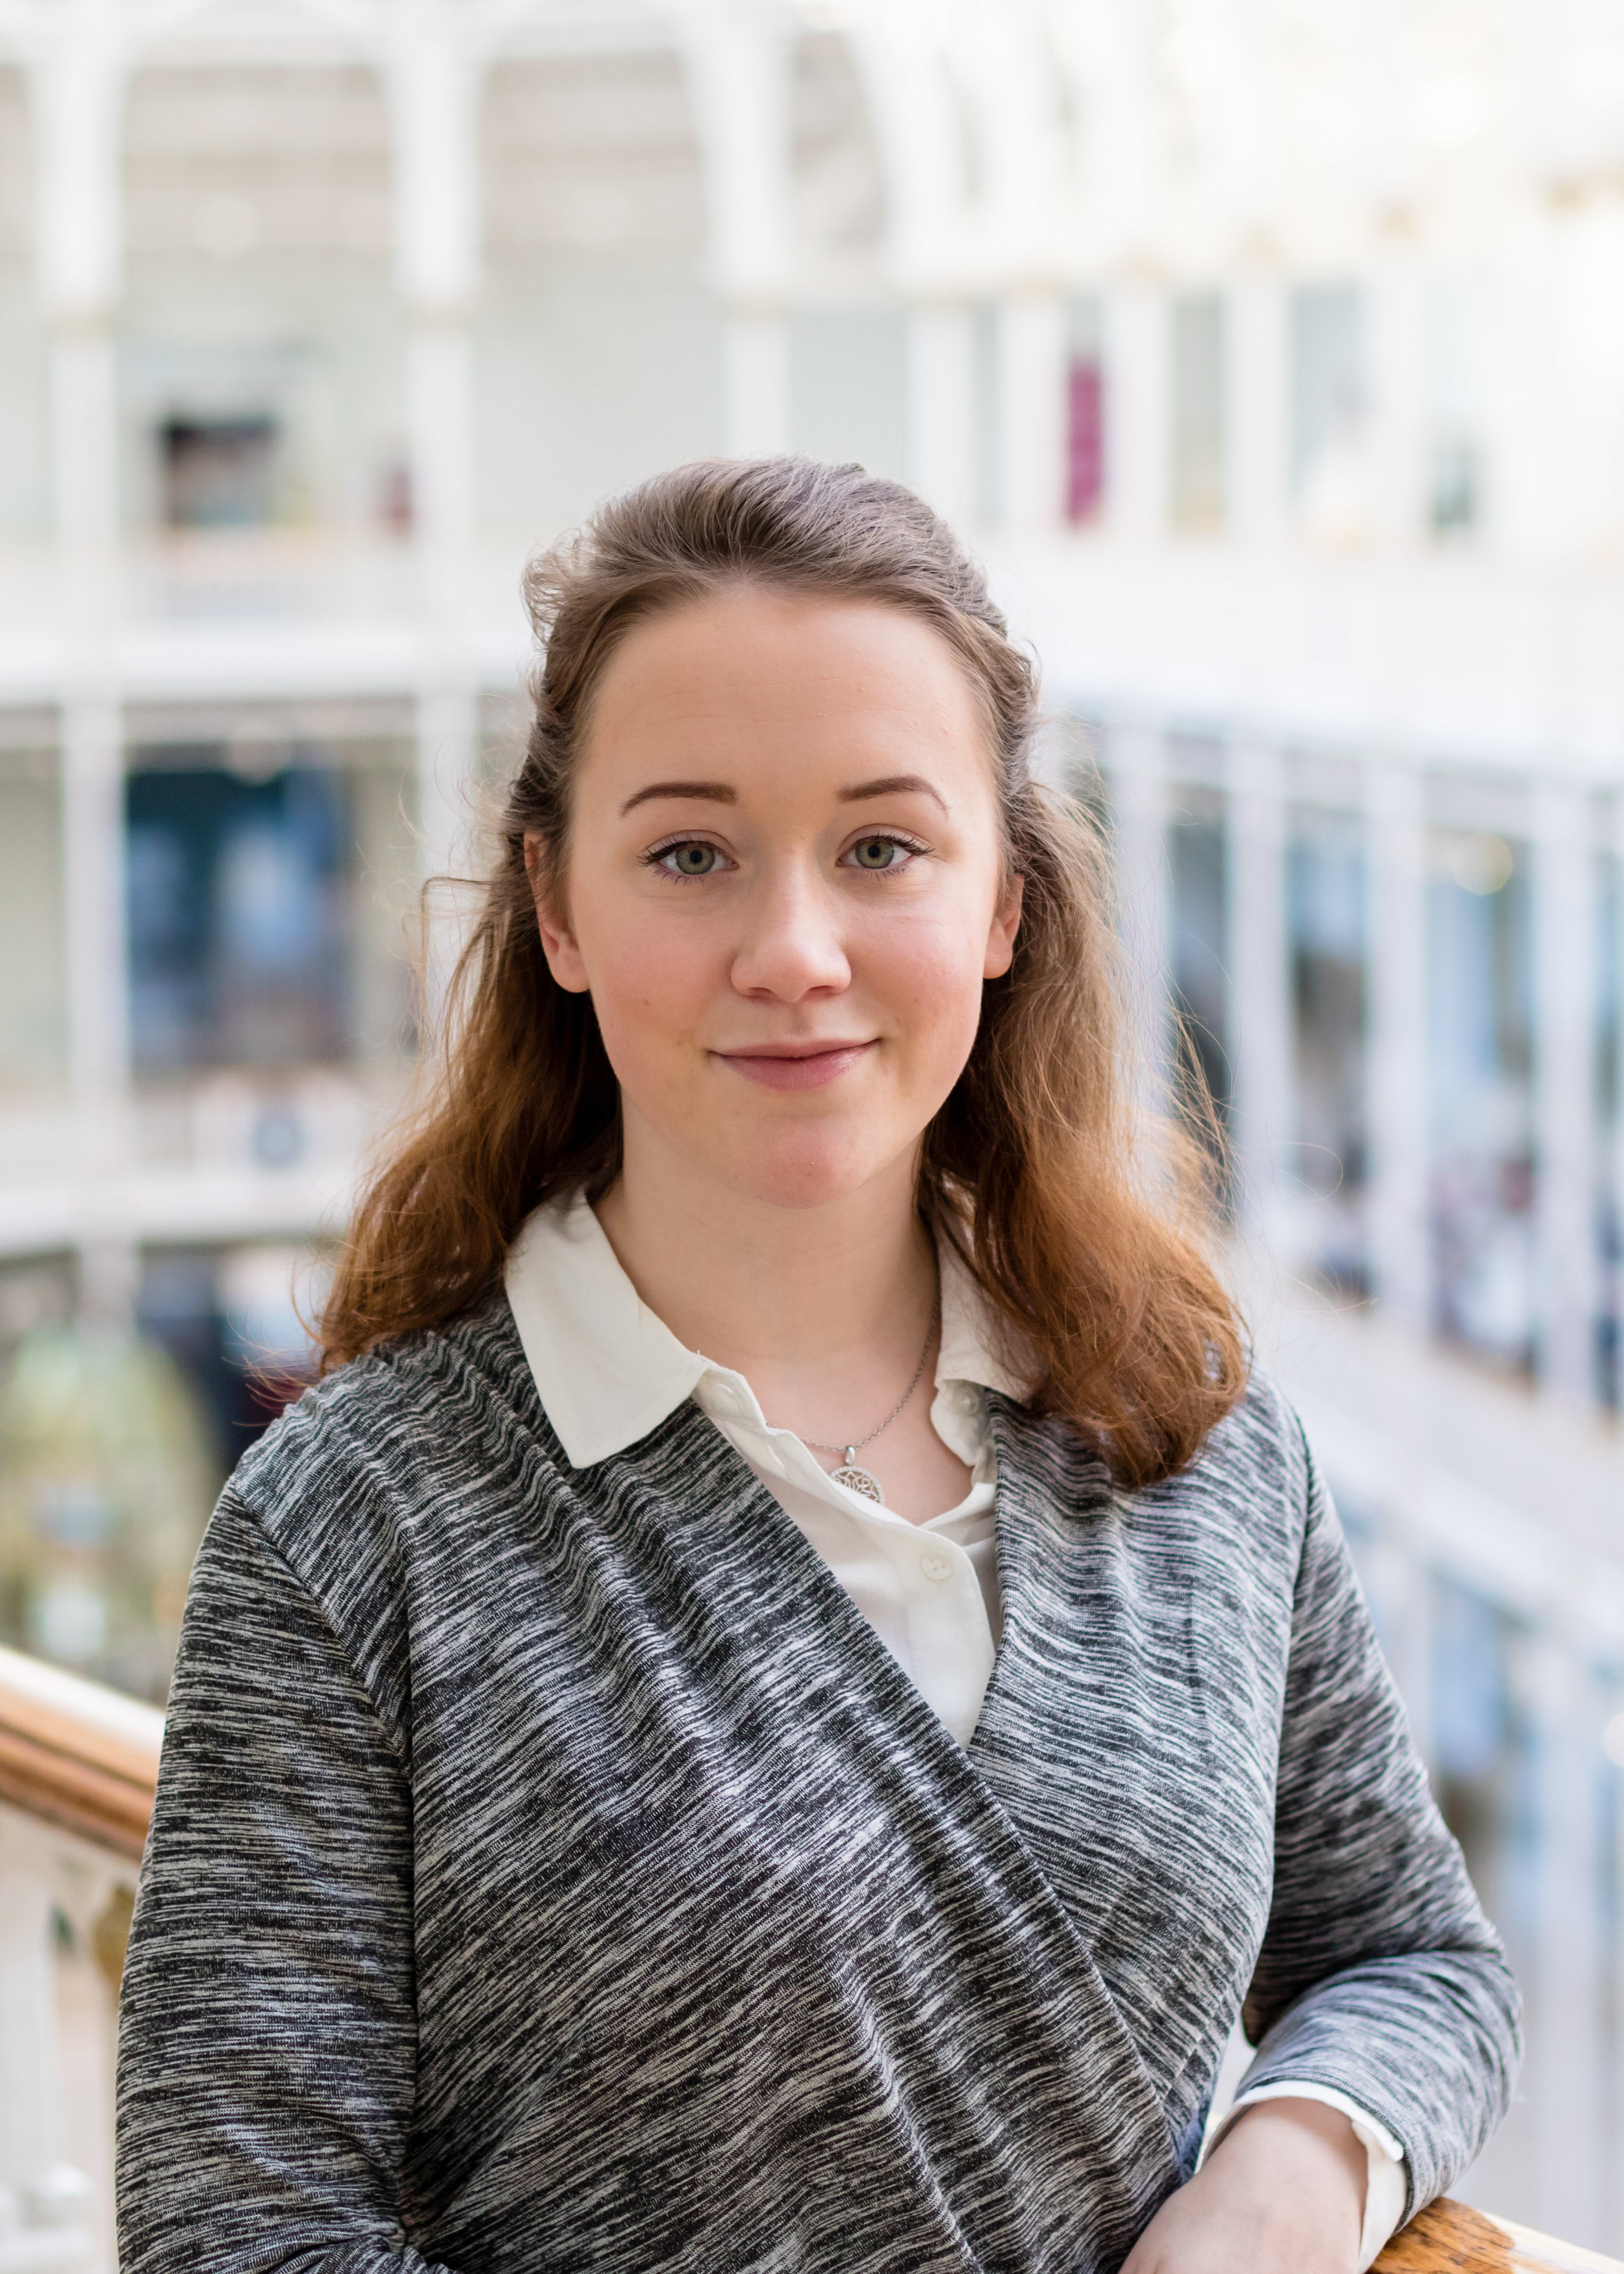 Hedvig Heffer Flaata    Director, Operations and Events  Oslo, Norway  Area of study: MA (Hons) Business with Strategic Economics   Inspiration: Spirit, creativity and diligence